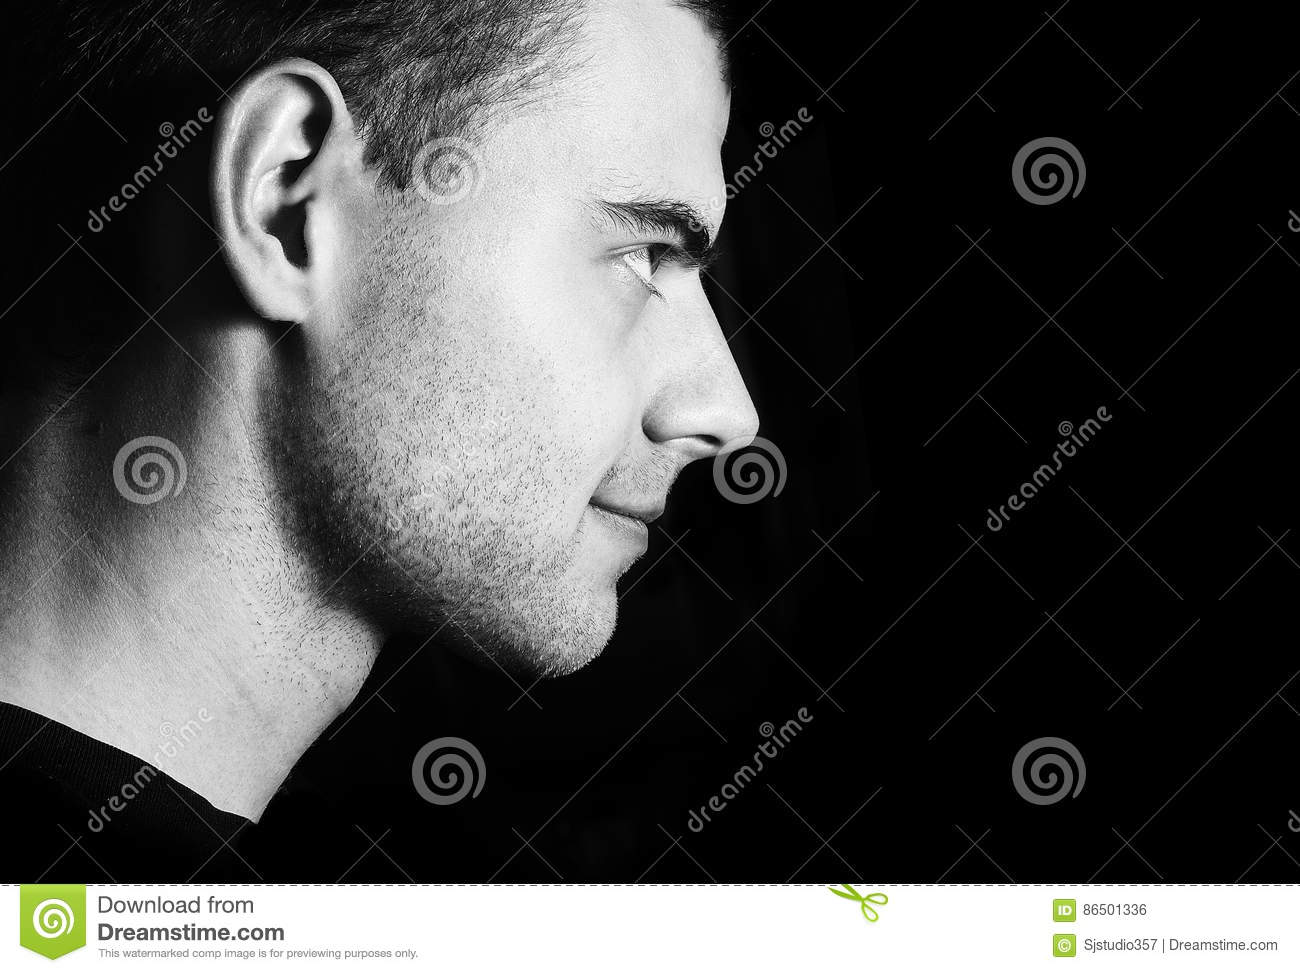 Handsome guy unshaven smiling dark portrait profile in low key black and white low key portrait of young